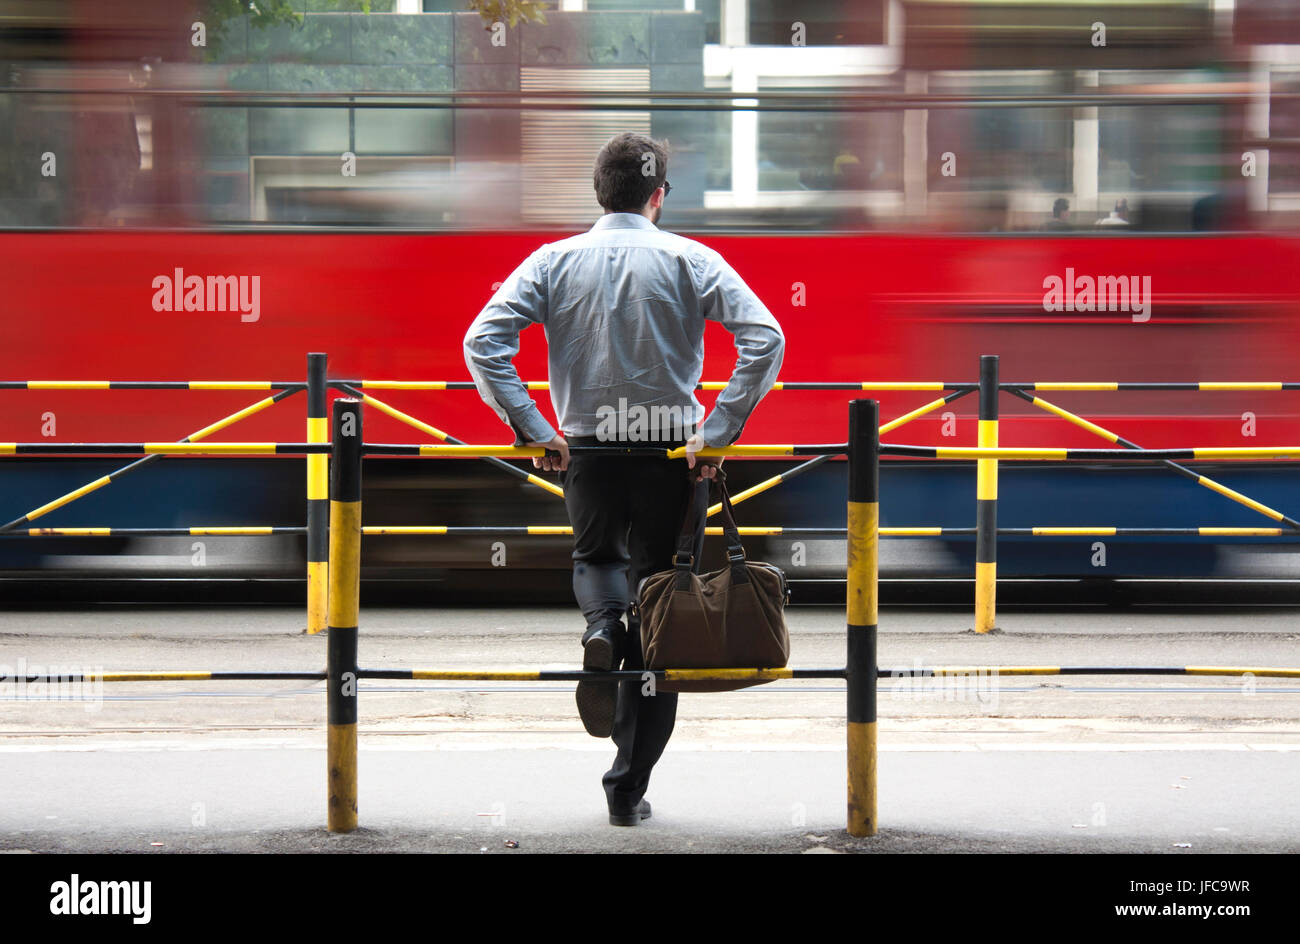 One young man waiting for public transport at bus stop Stock Photo